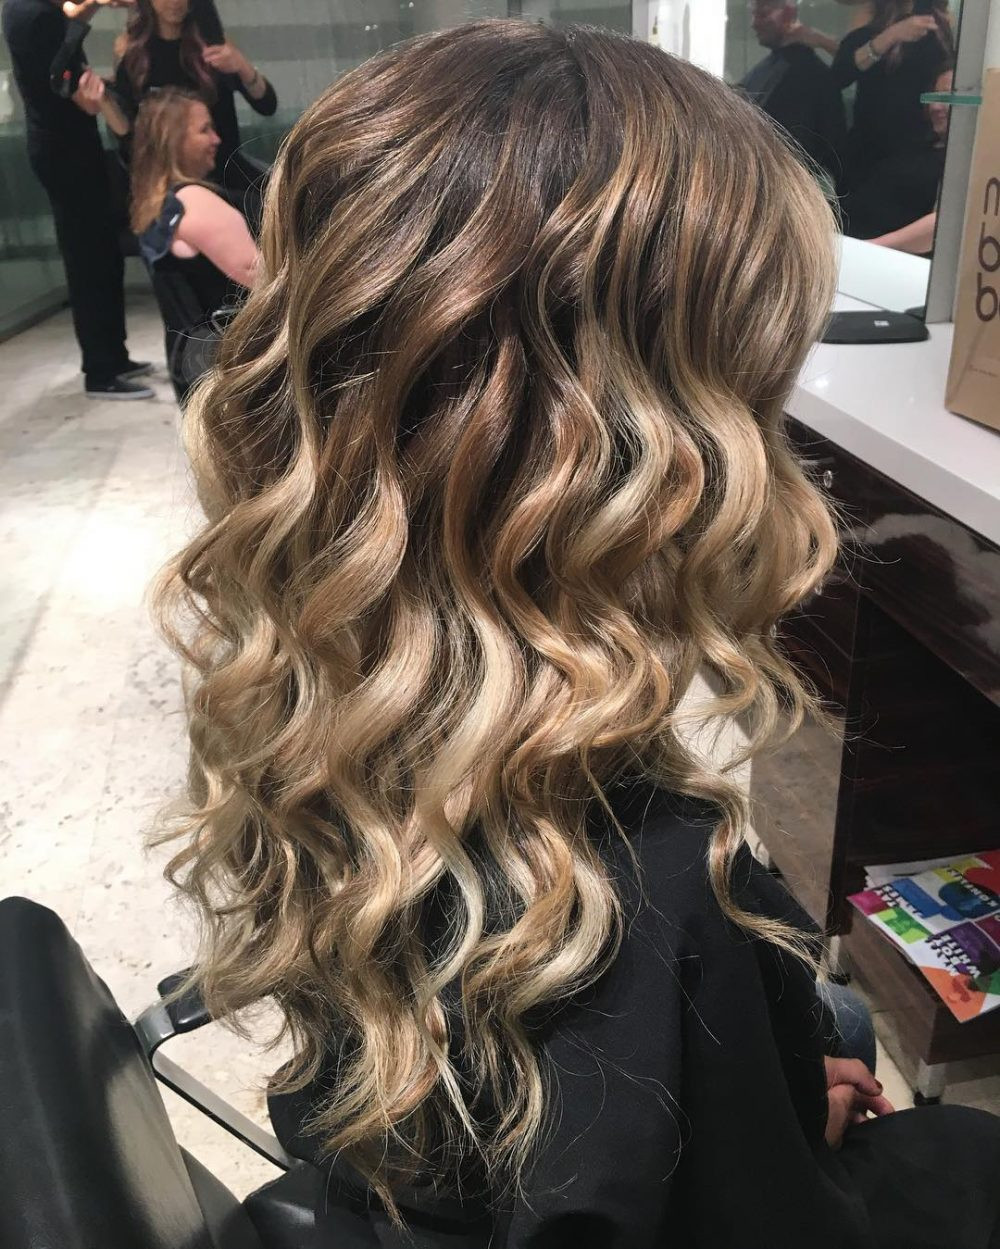 Best ideas about Prom Hairstyle Curly . Save or Pin 18 Stunning Curly Prom Hairstyles for 2019 Updos Down Now.